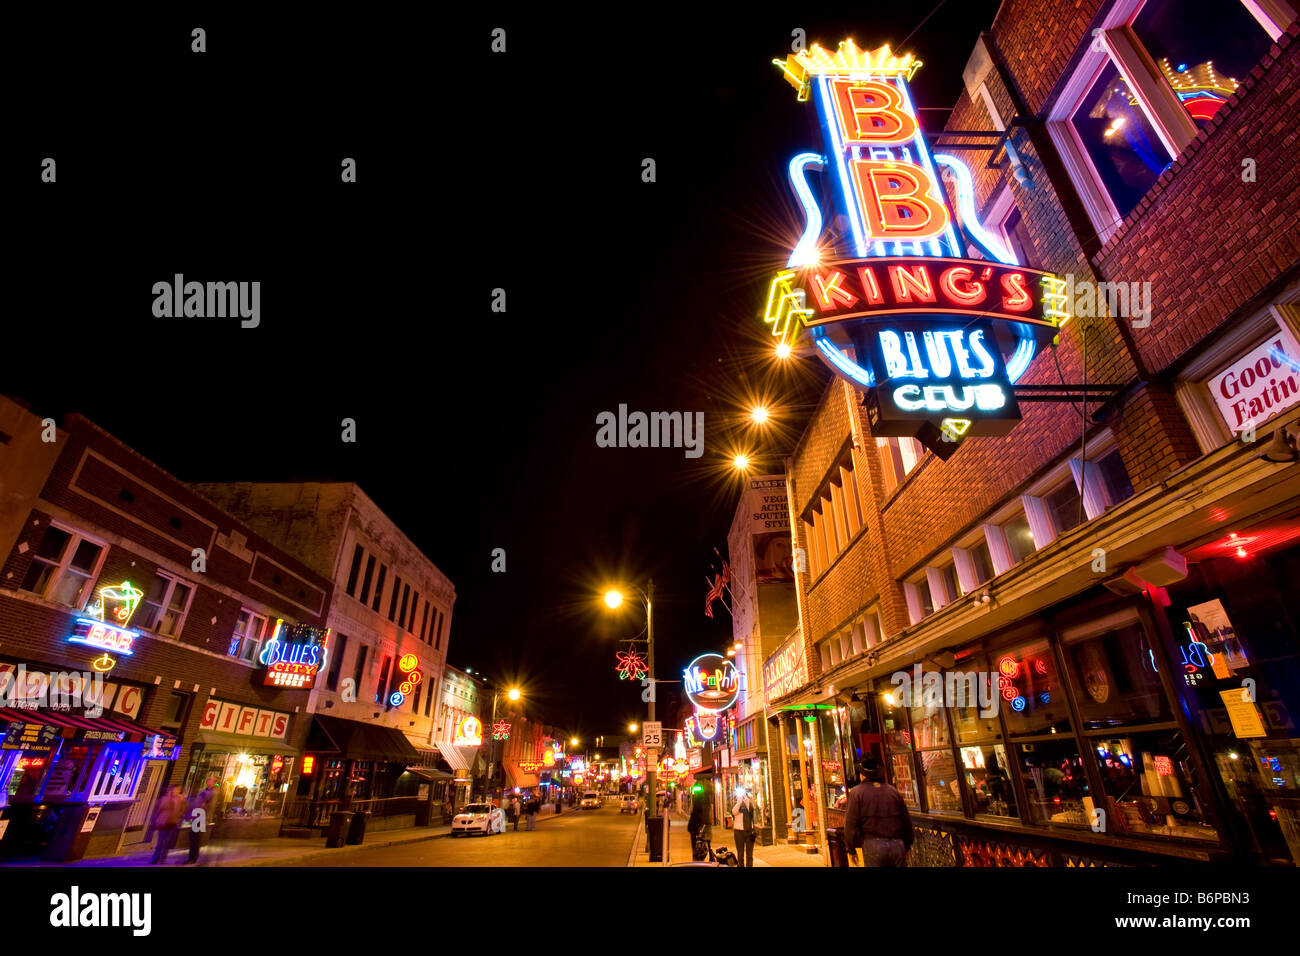 Famous blues clubs on Beale street in Memphis, TN - Stock Image